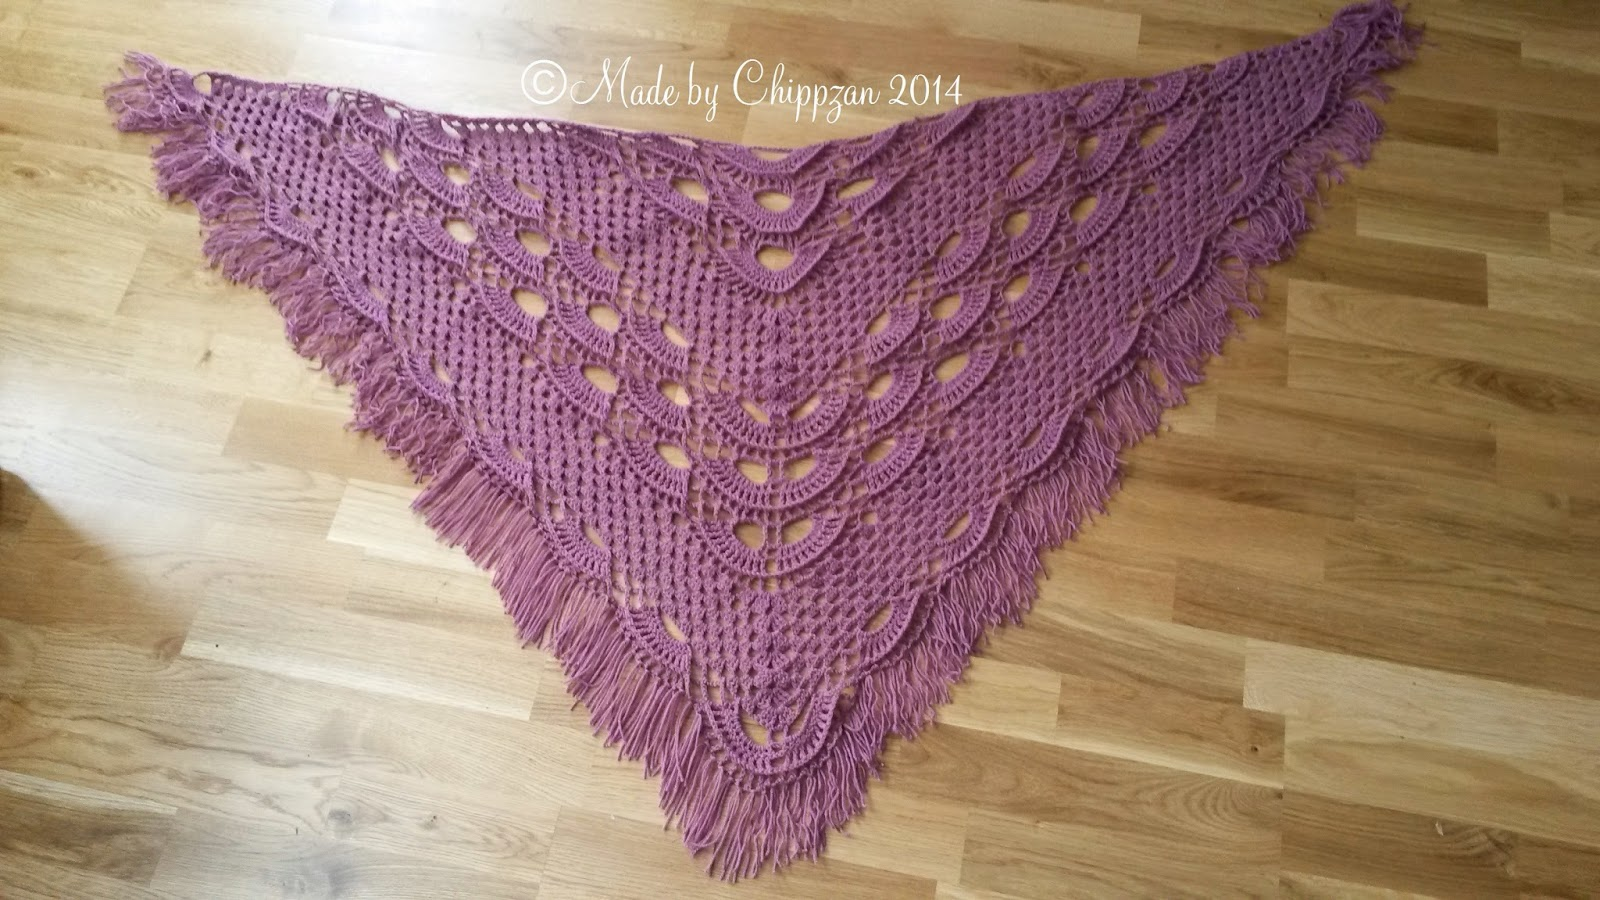 Russian Lace Crochet Scarf Diagram 1998 Bmw Z3 Radio Wiring Made By Chippzan Shawl With Shells And Clusters Of